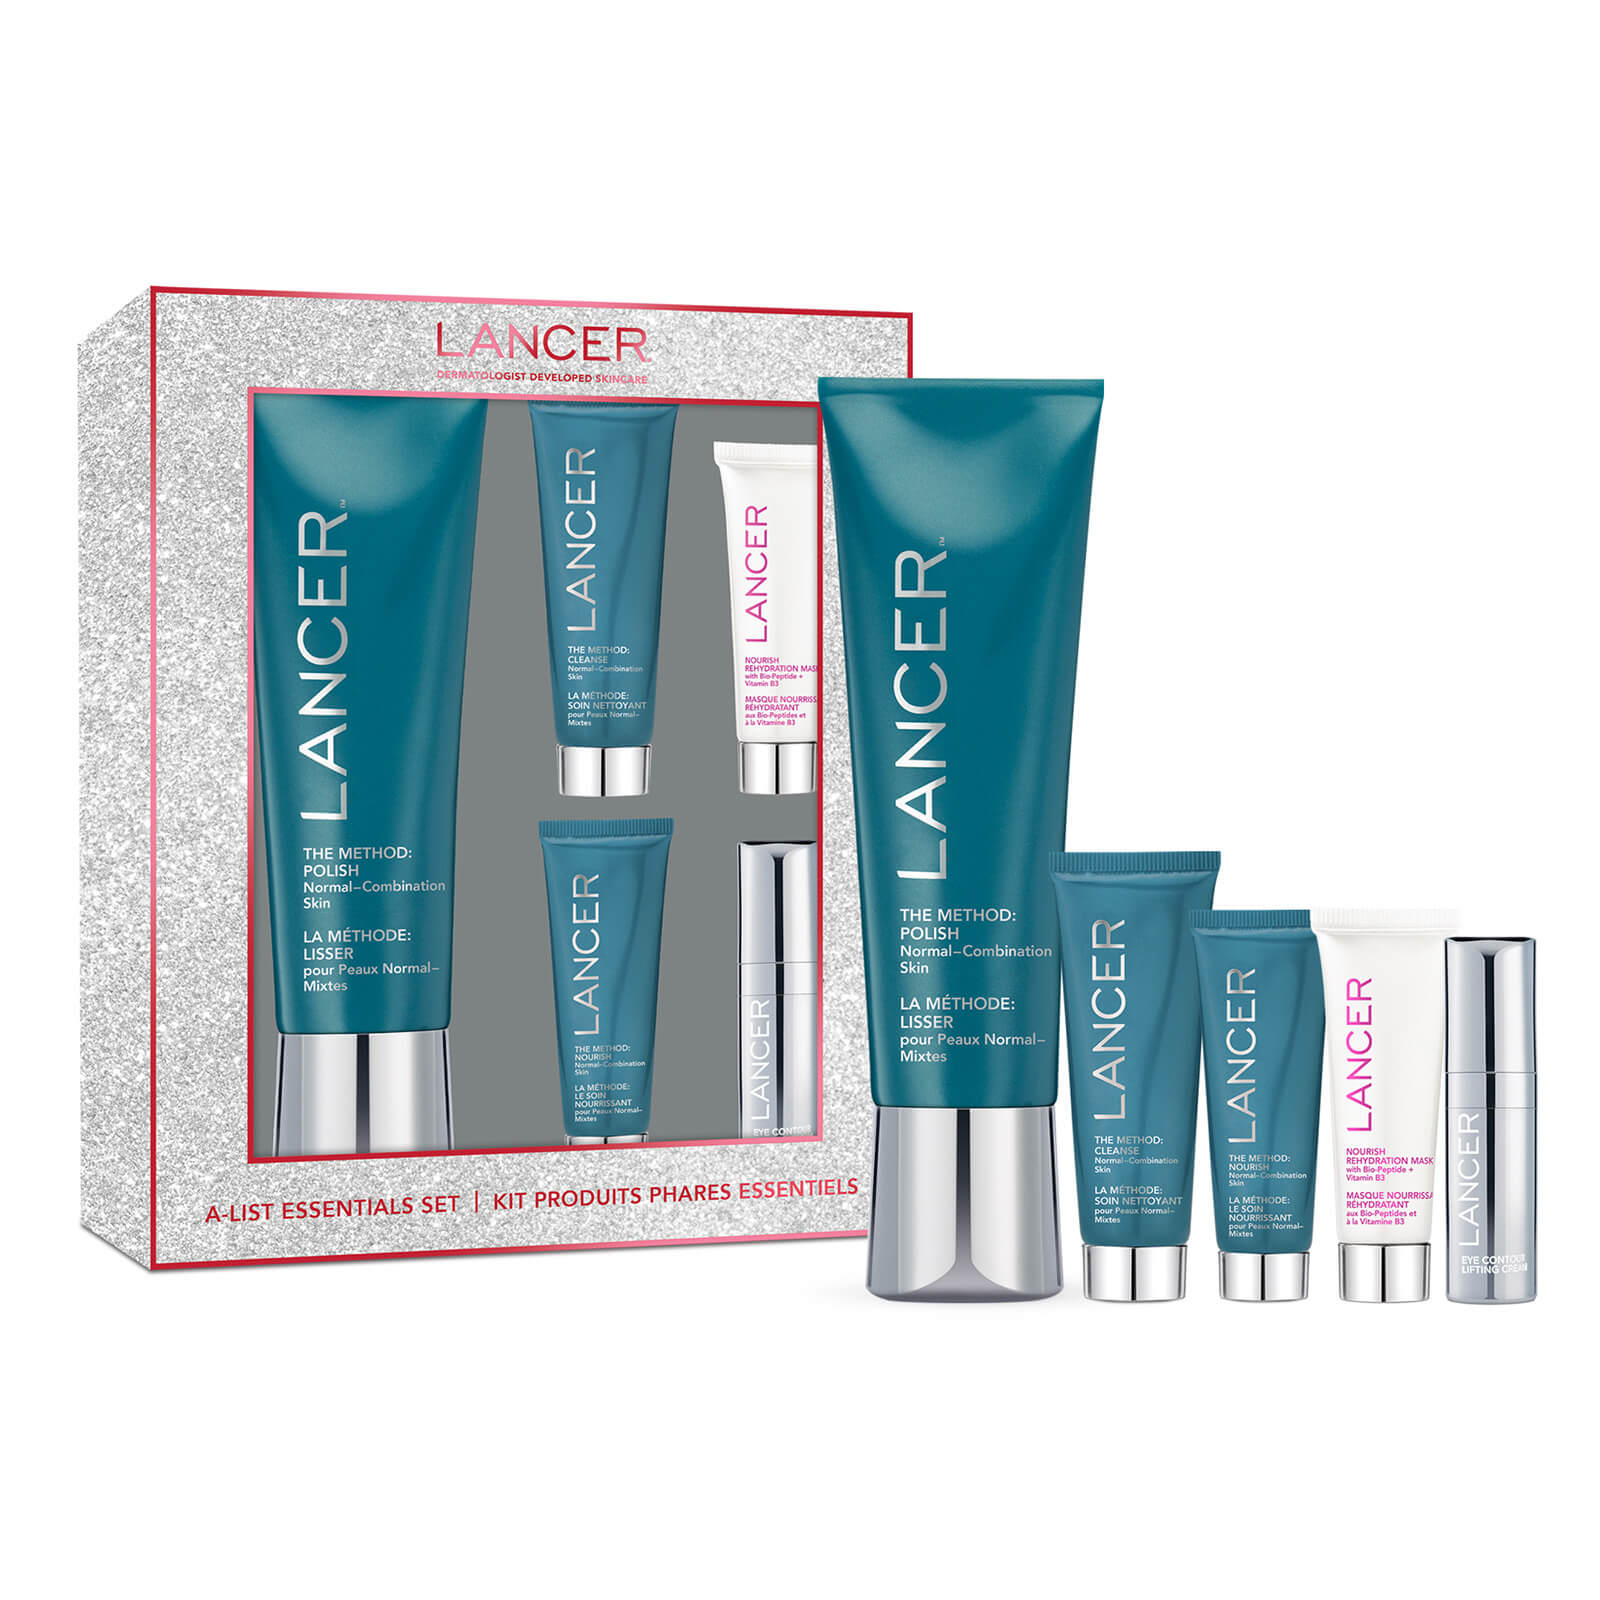 Lancer A-List Essentials 5-Piece Set (Worth £134.00)